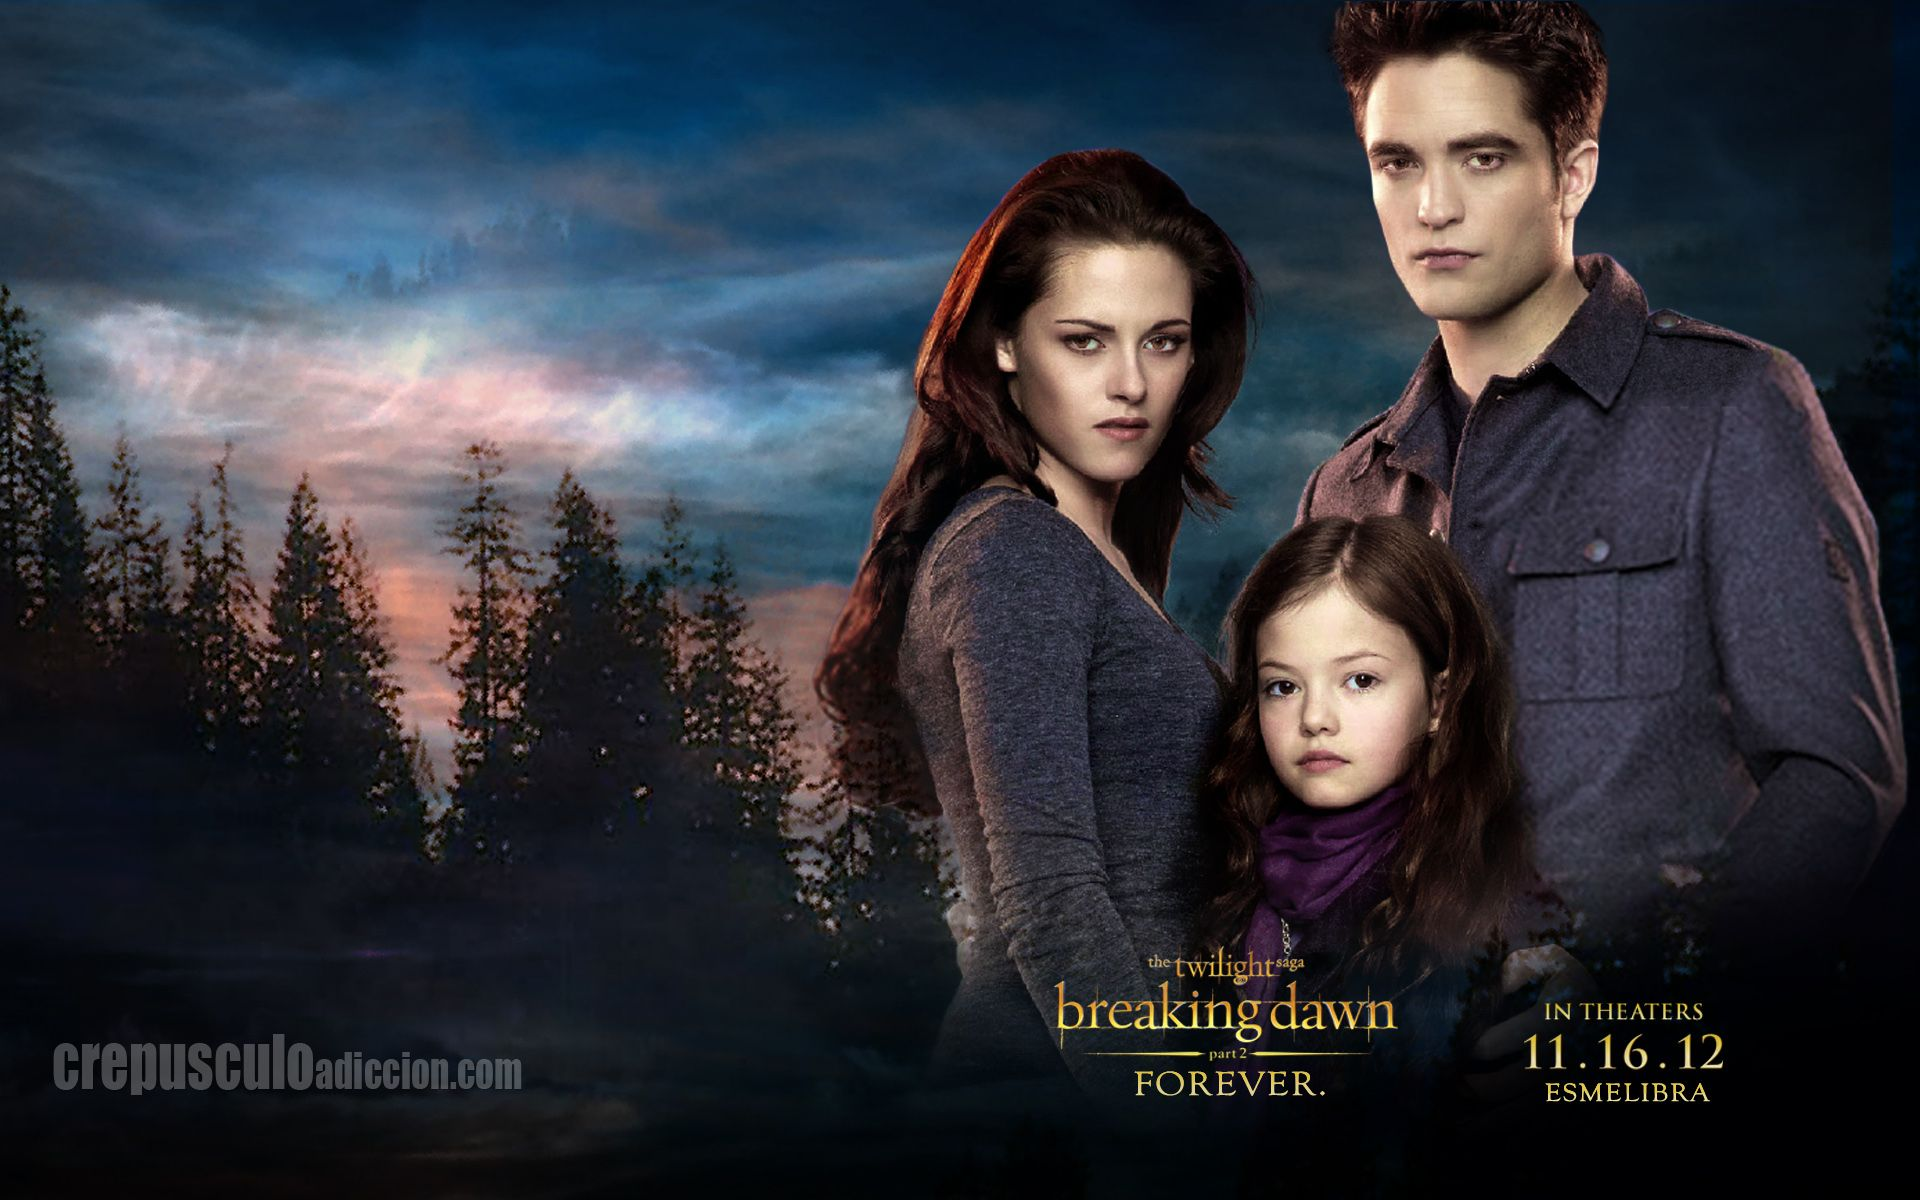 Twilight Live Wallpapers Hd Download Twilight Live Wallpapers Hd